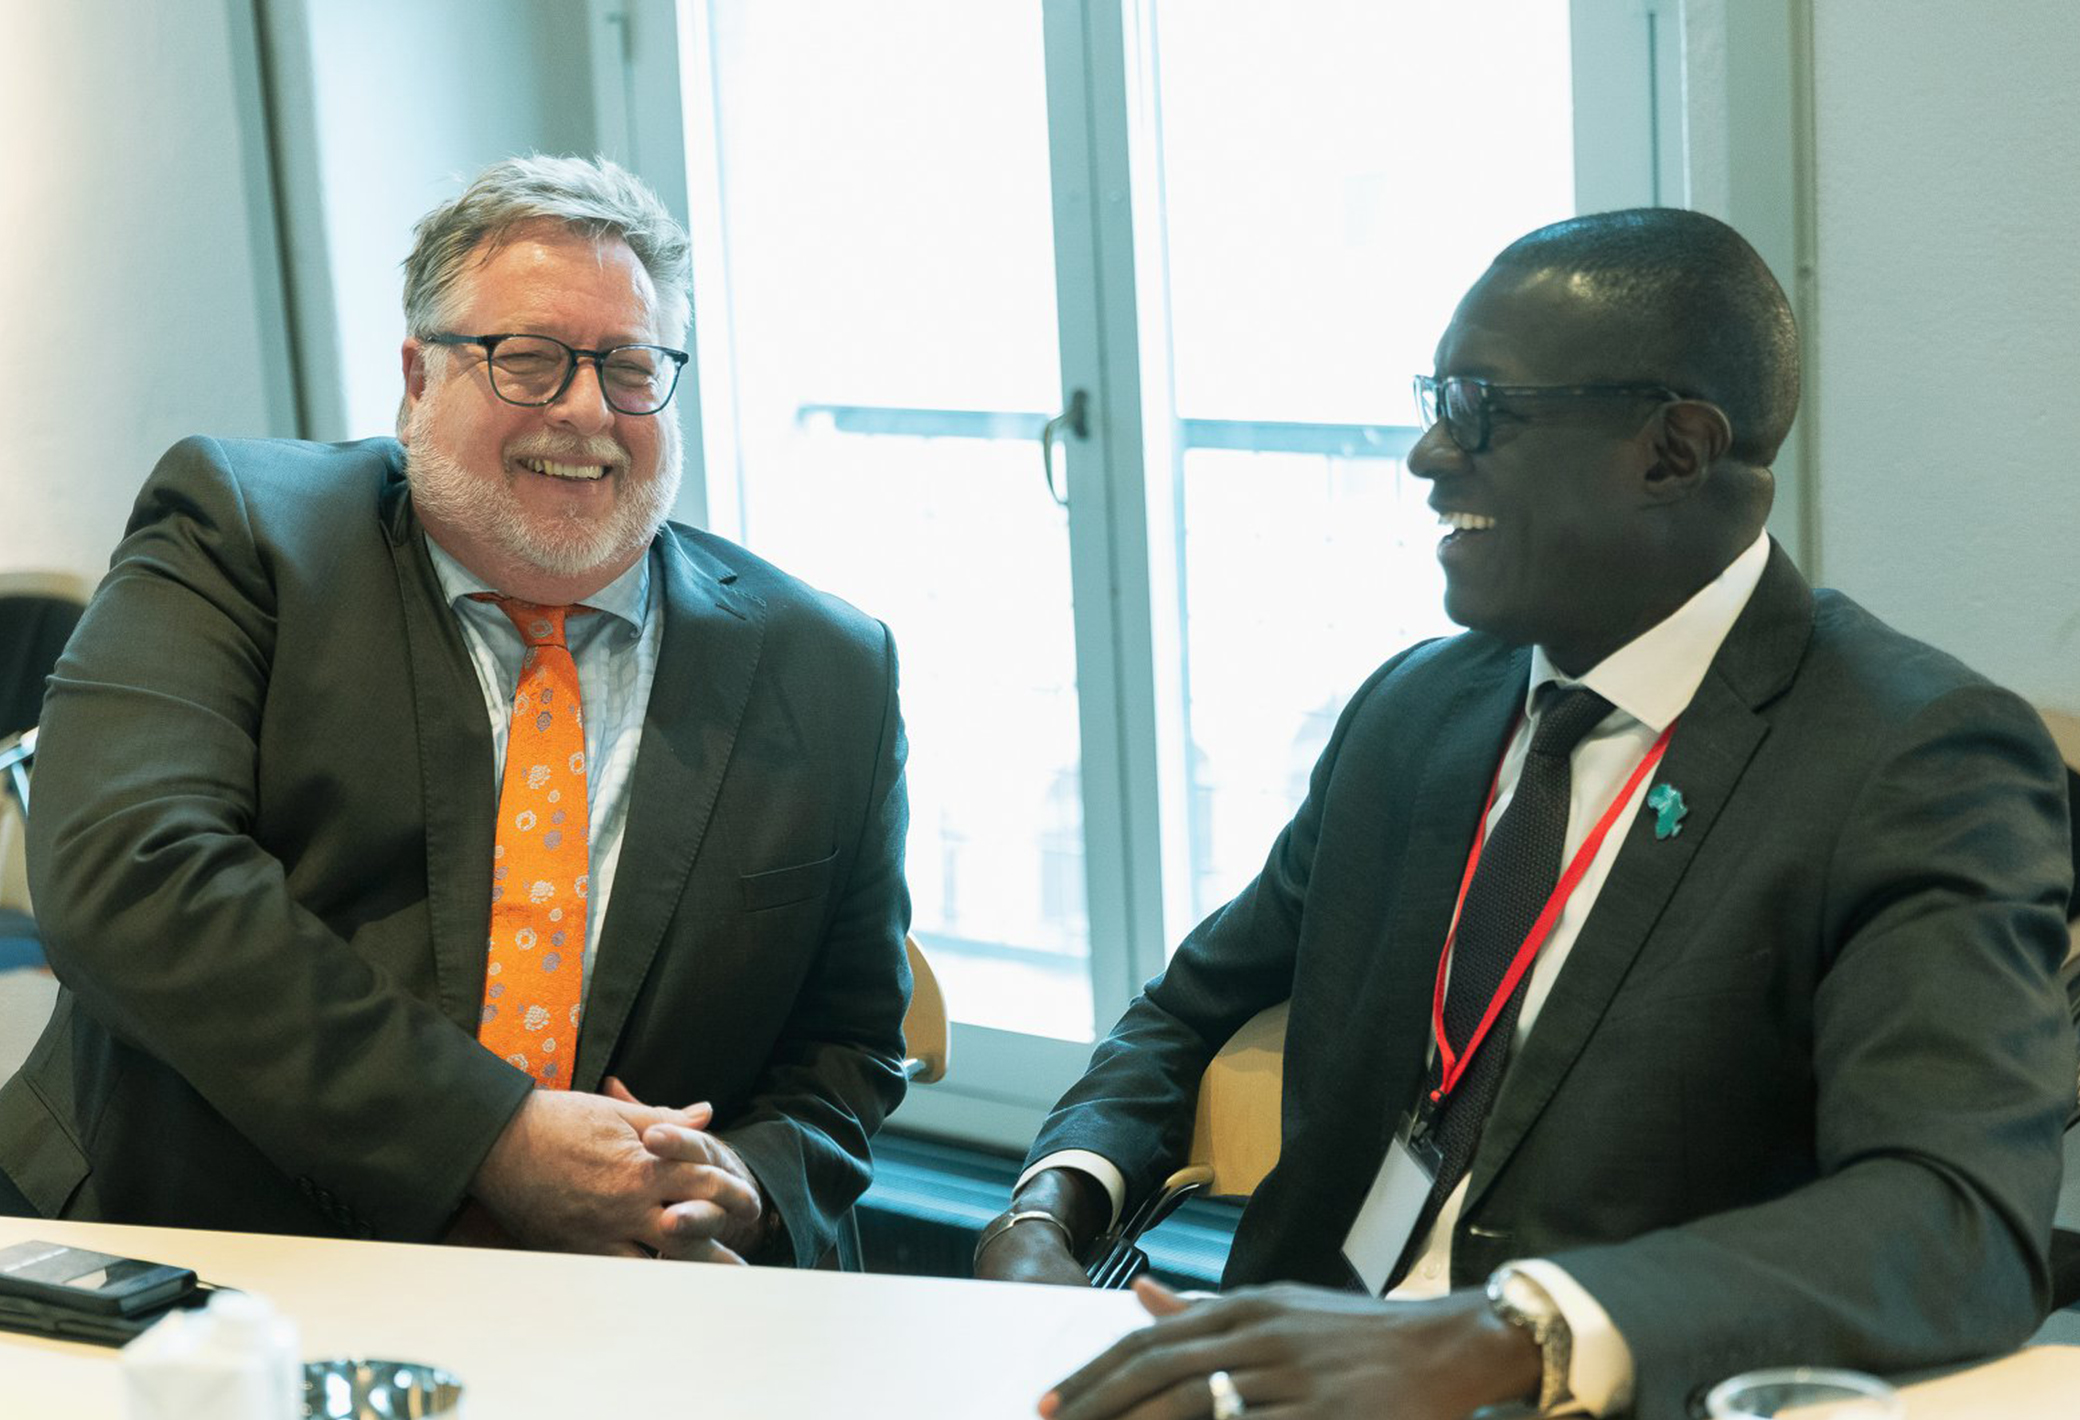 Beer Schröder, Advisor to the Nuffic Board of Directors, and Dr Cheikh Mbow, Director of START International, this year's Danida Alumni Prize recipient. The Donor Harmonisation Group Forum was initiated by Beer Schröder in 2010. Photo: Crawfurd Media.